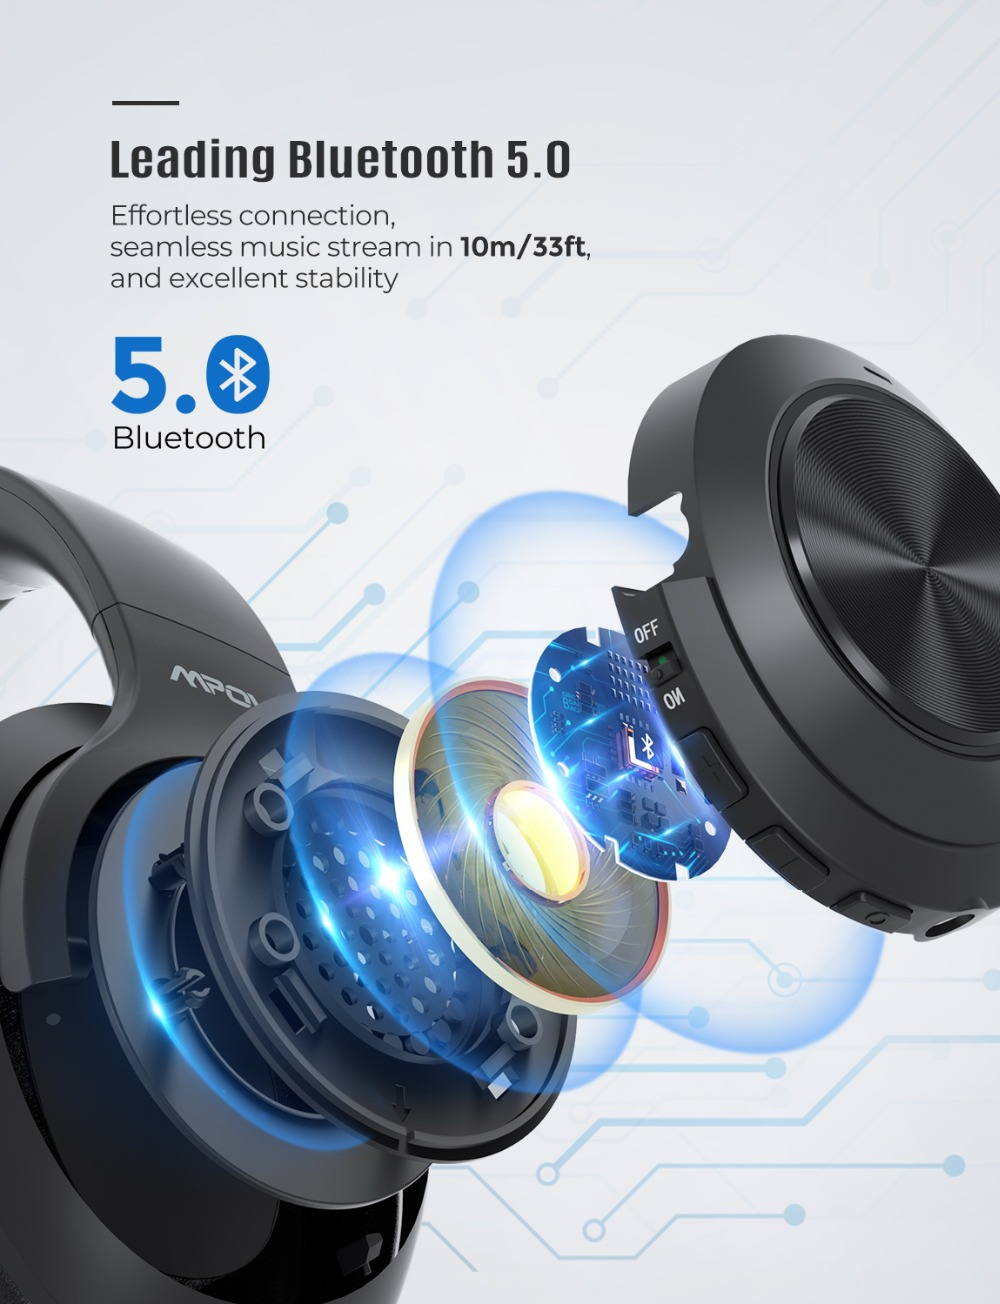 Mpow H21 Wireless Headphone Bluetooth 5.0 Noise Cancelling Headphone With 40 Hours Playtime CVC6.0 Mic Deep Bass For PC Phone (5)